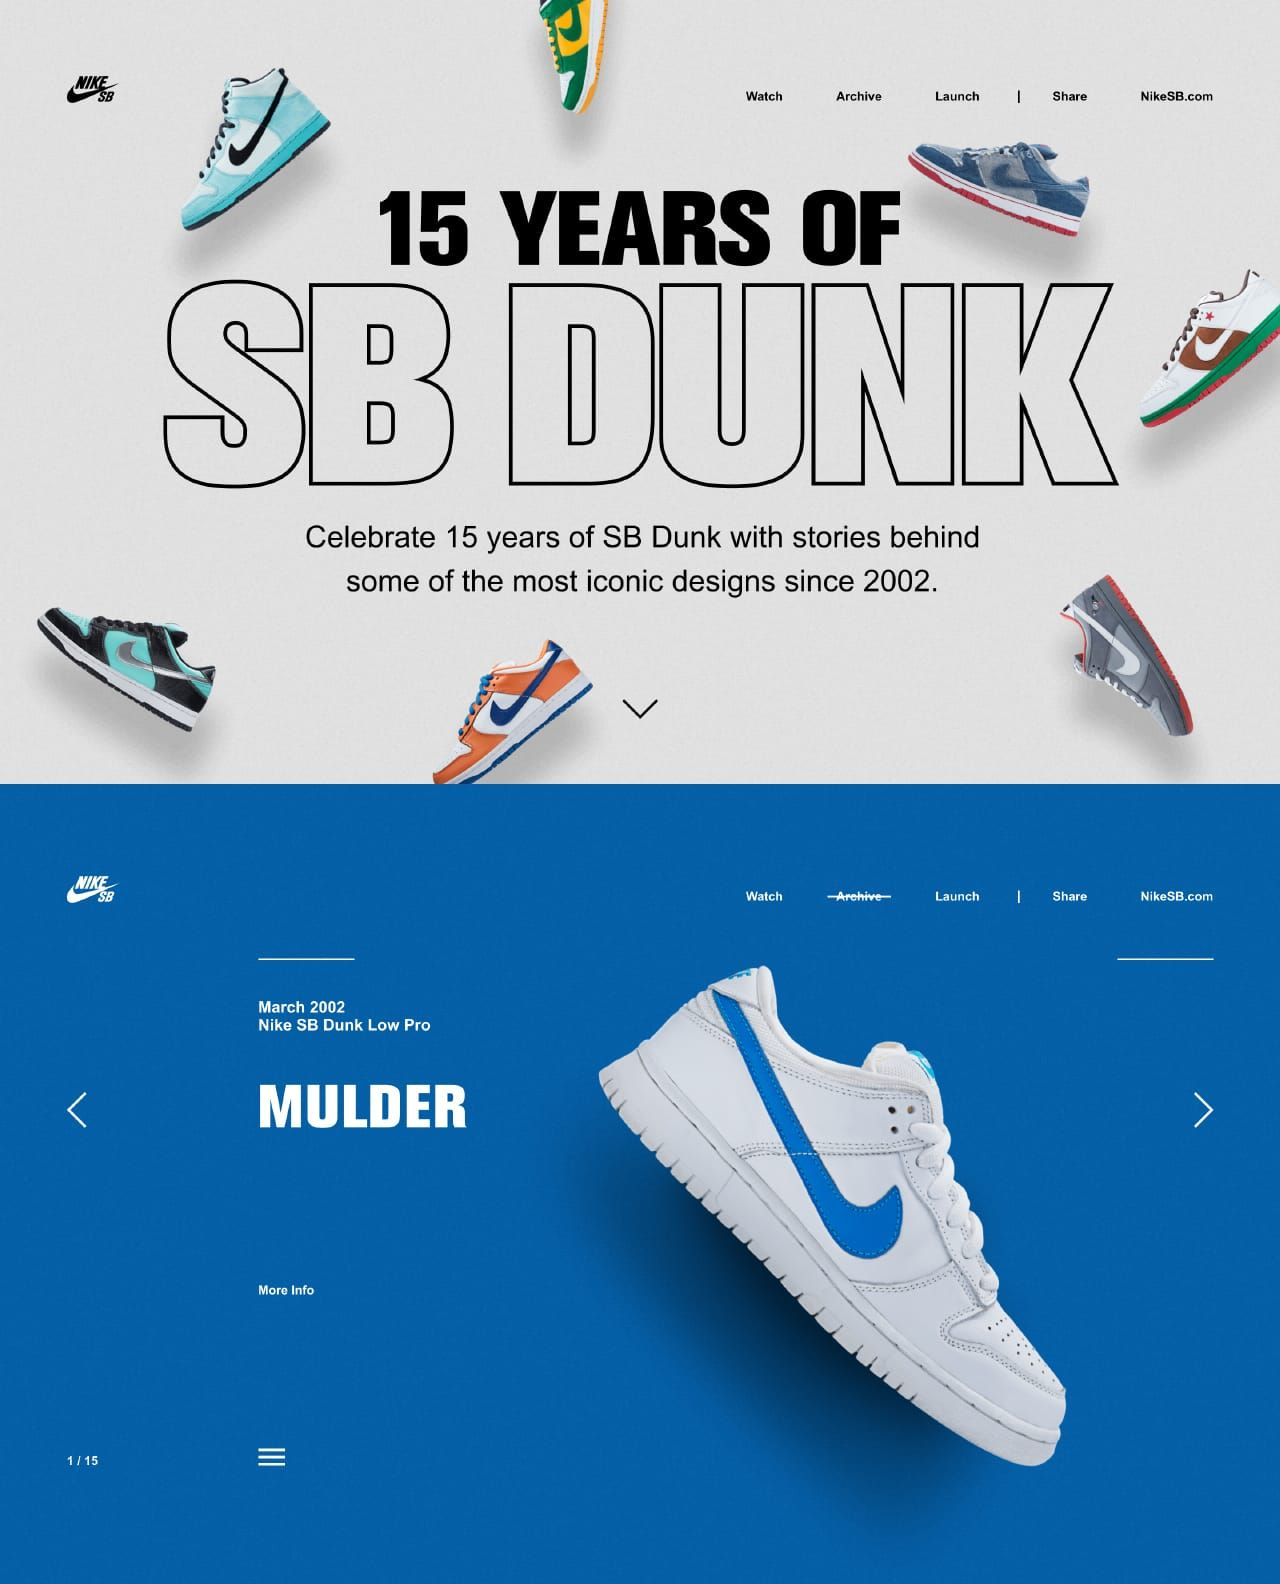 best website b3bba 0fc4e Brilliant One Pager by Nike celebrating 15 Years of their SB Dunks. The  campaign Landing